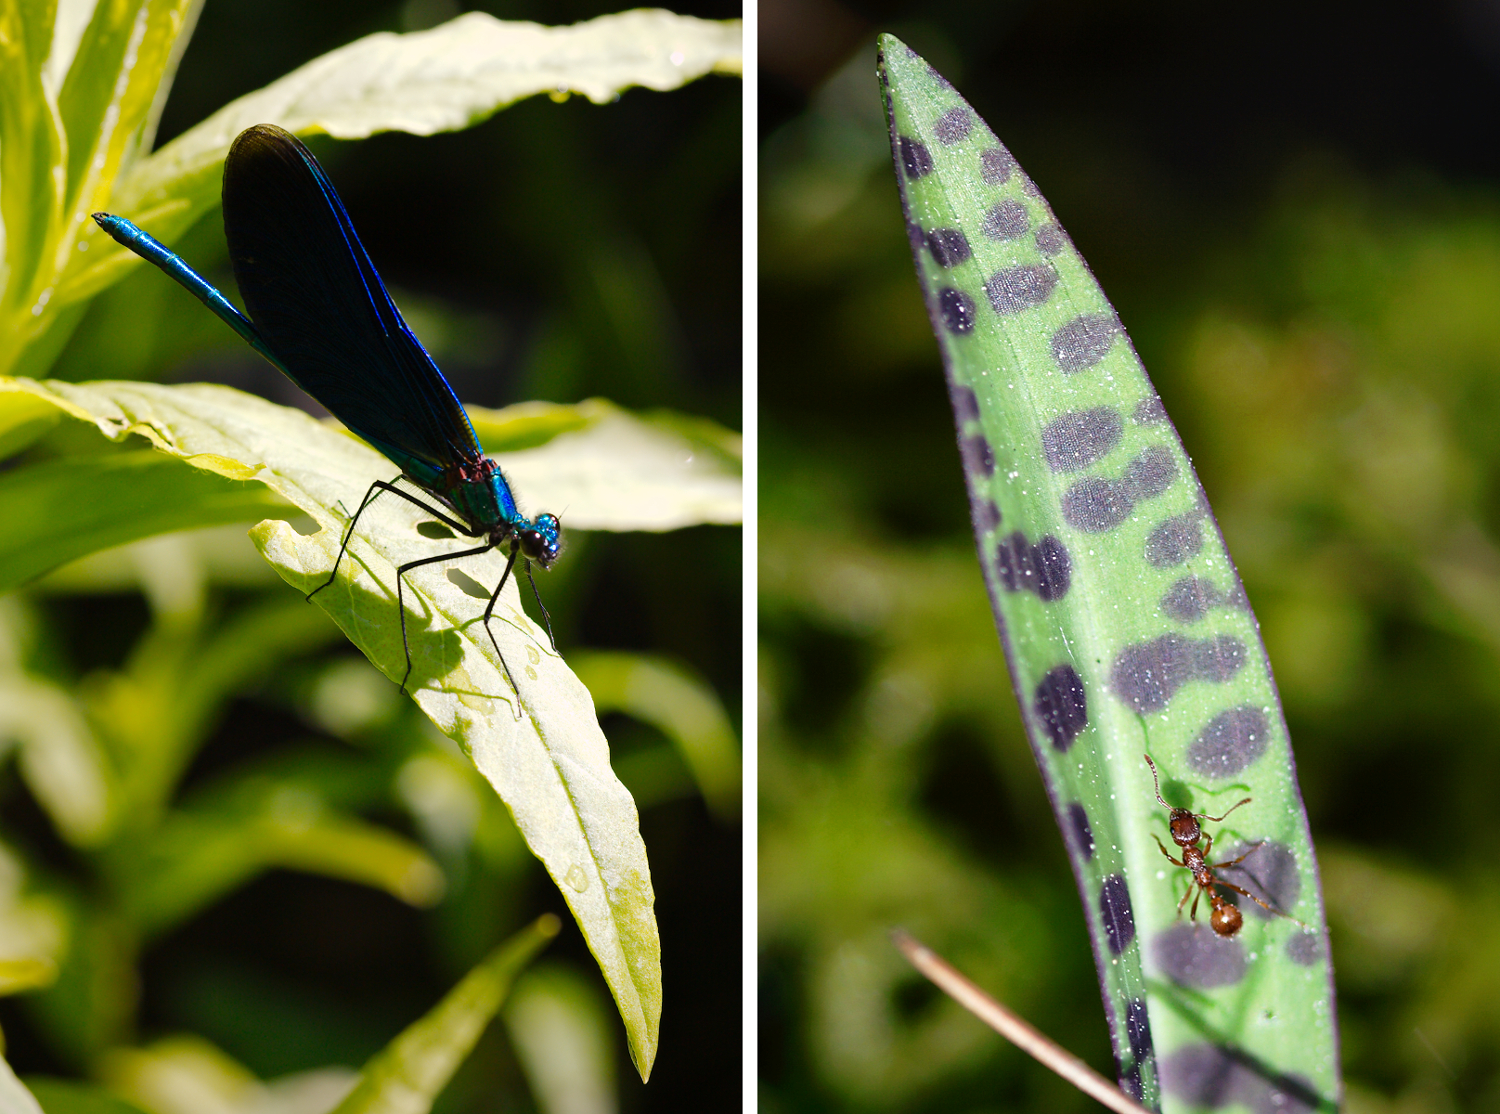 Damselfly and ant. Insect Photography Tips